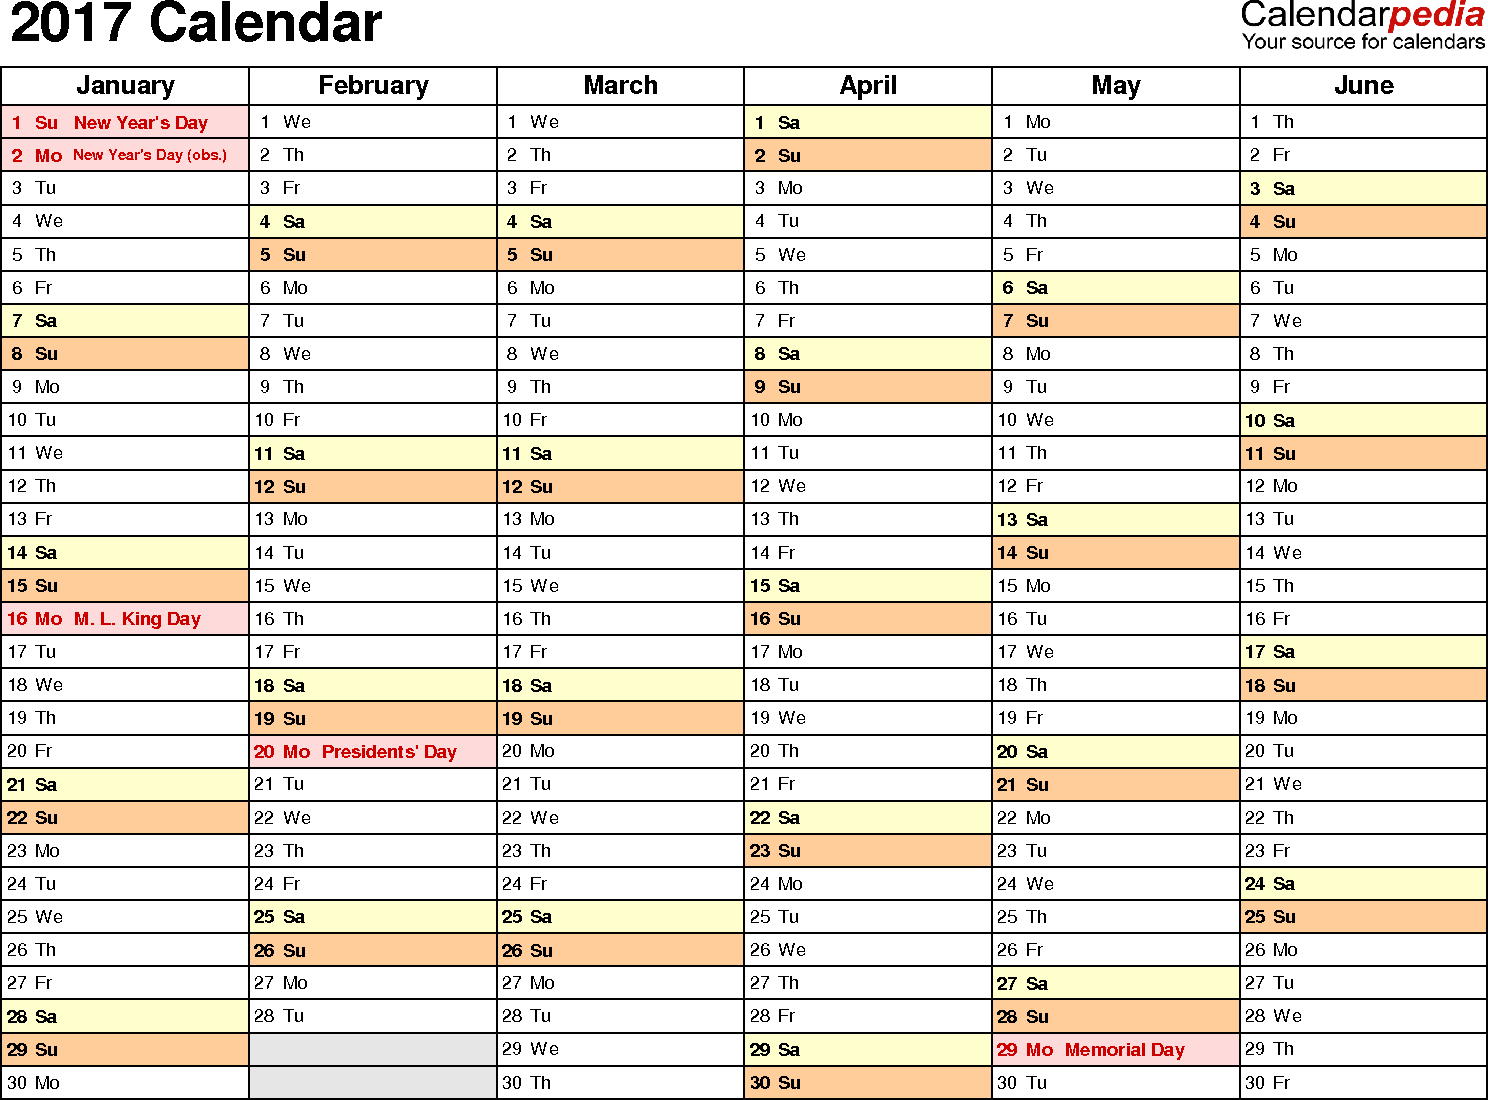 Ediblewildsus  Winsome  Calendar  Download  Free Printable Excel Templates Xls With Interesting Template   Calendar For Excel Months Horizontally  Pages Landscape Orientation With Endearing Whole Number In Excel Also Assets And Liabilities Worksheet Excel In Addition Logical Function In Excel And Excel Matching Columns As Well As Excel Regression Output Explained Additionally Training Checklist Template Excel From Calendarpediacom With Ediblewildsus  Interesting  Calendar  Download  Free Printable Excel Templates Xls With Endearing Template   Calendar For Excel Months Horizontally  Pages Landscape Orientation And Winsome Whole Number In Excel Also Assets And Liabilities Worksheet Excel In Addition Logical Function In Excel From Calendarpediacom